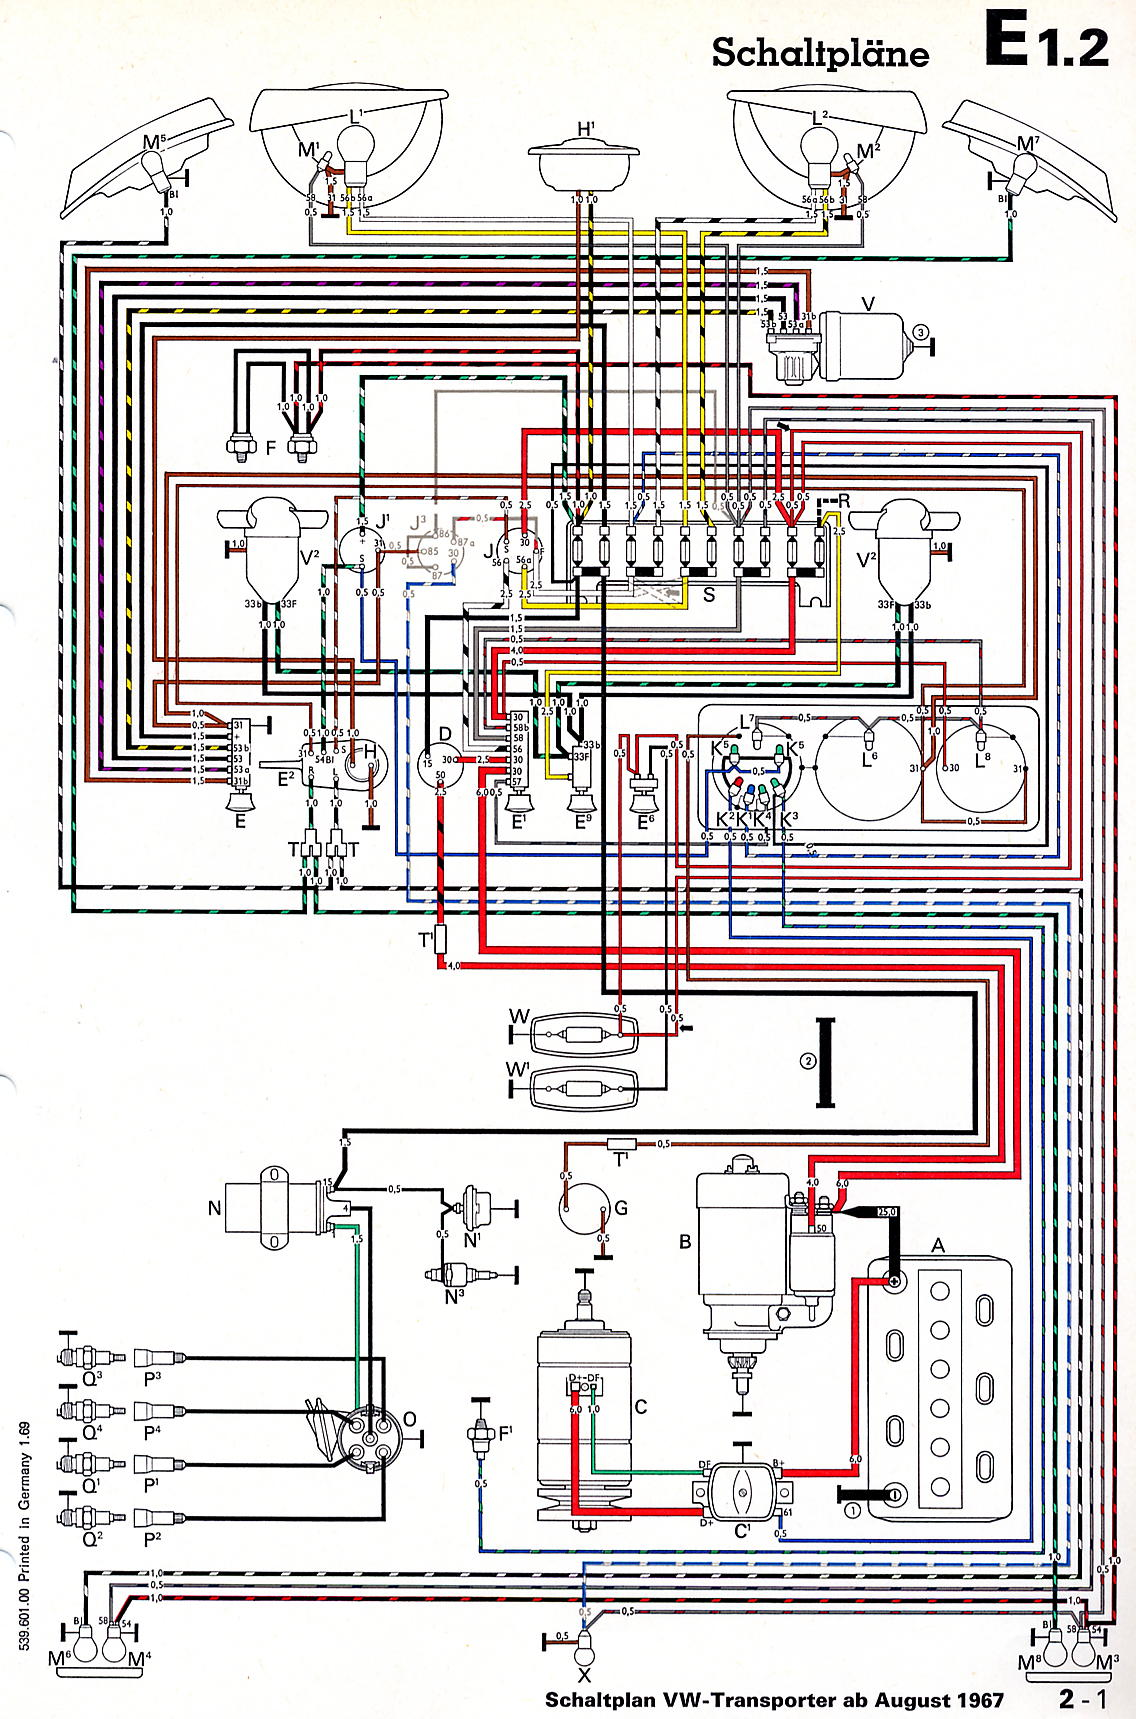 Bad Wiring Diagram Free Picture Schematic Reveolution Of Roper Dryer Red4440vq1 Vintagebus Com Vw Bus And Other Diagrams Rh Basic Speaker Schematics Electrical Symbols